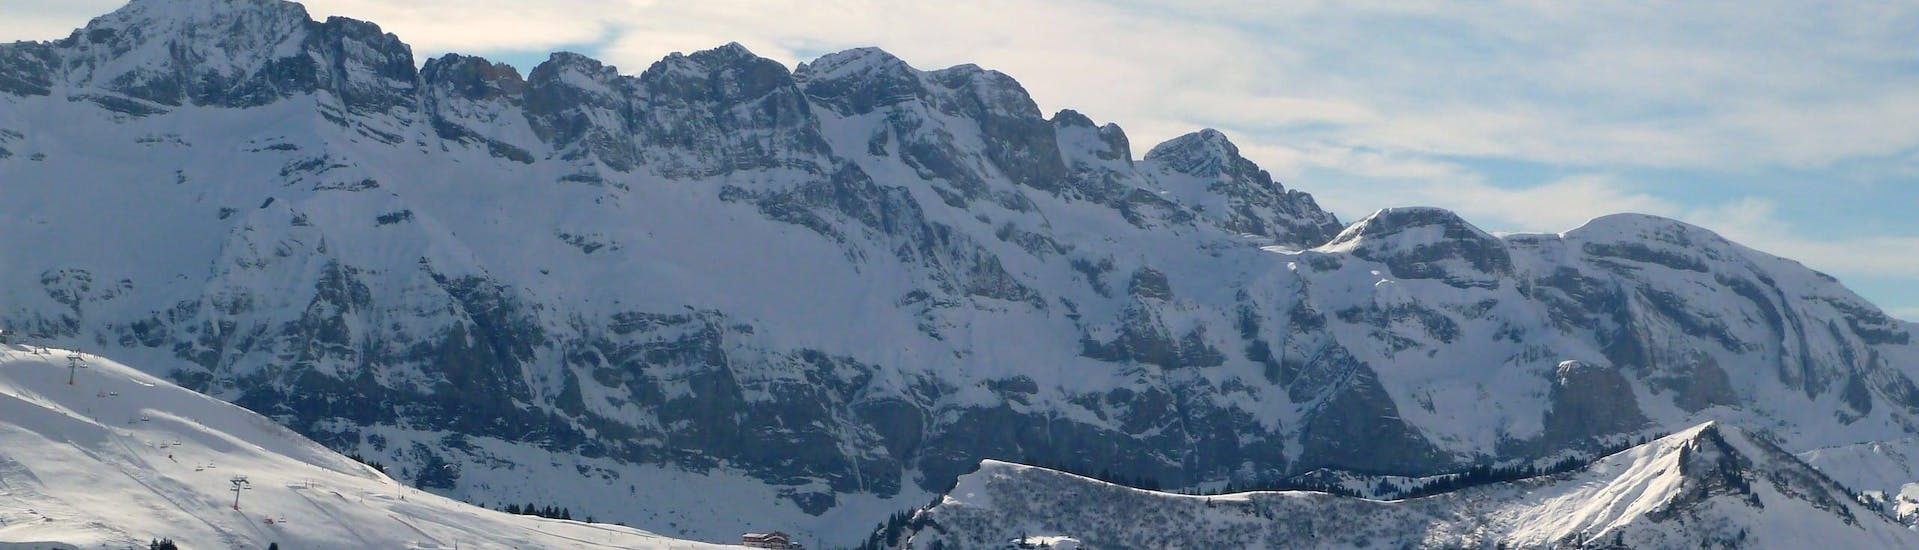 View over the sunny mountain landscape while learning to ski with the ski schools in Les Portes du Soleil.